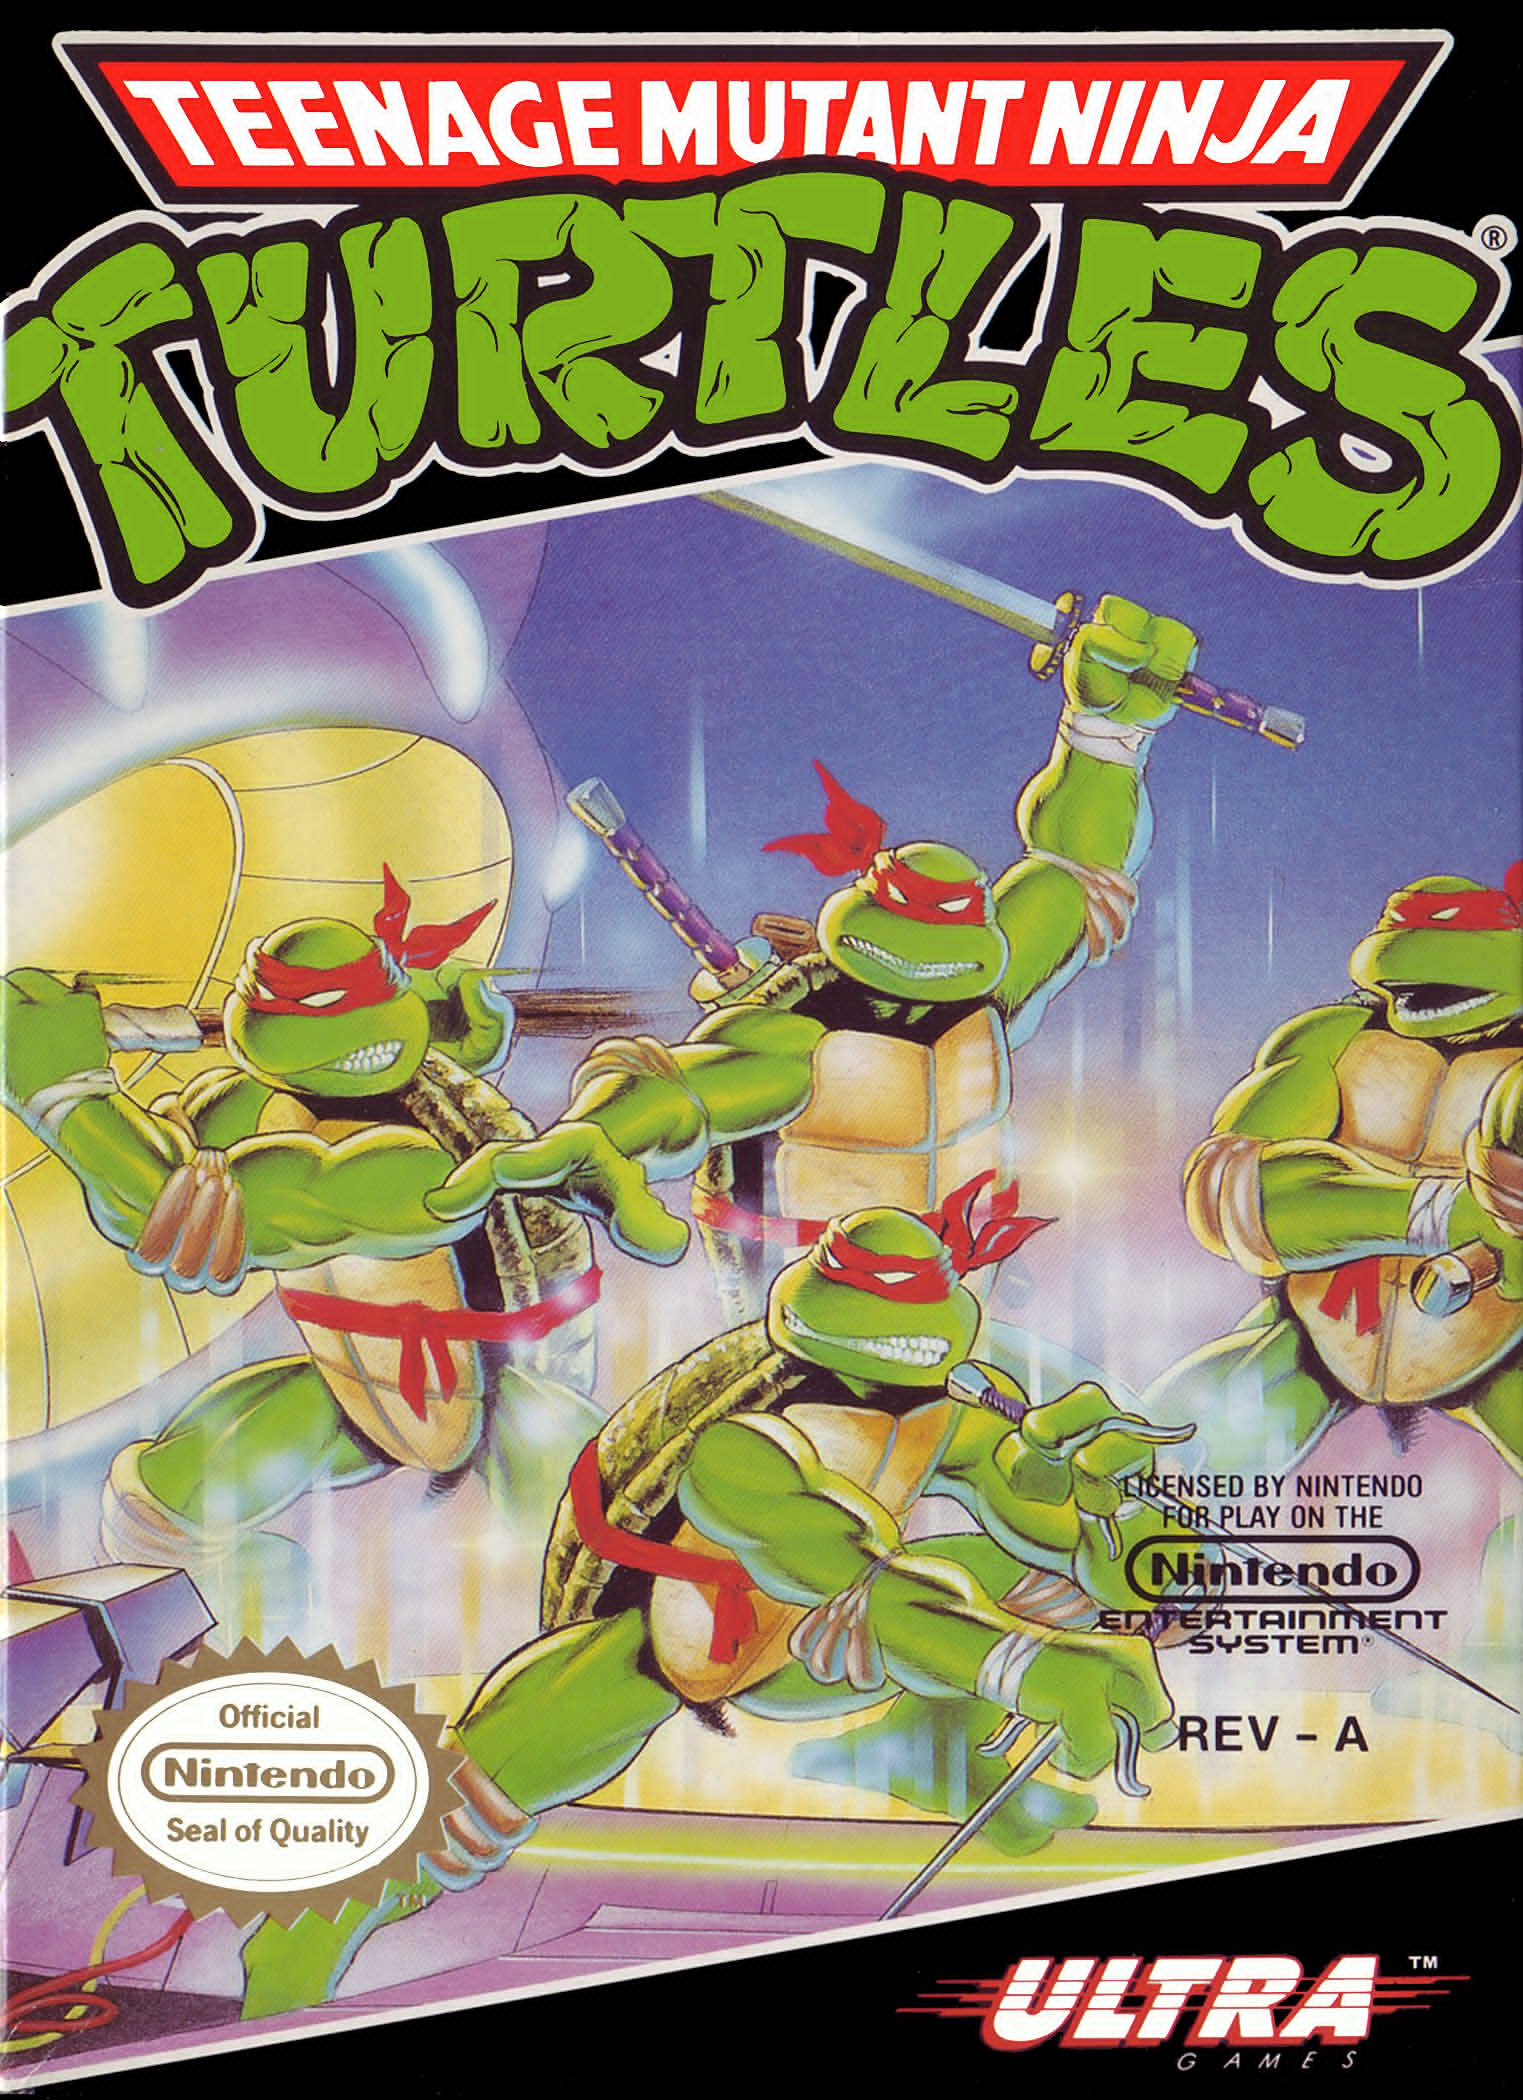 Teenage Mutant Ninja Turtles - The Arcade Game (Side 1)